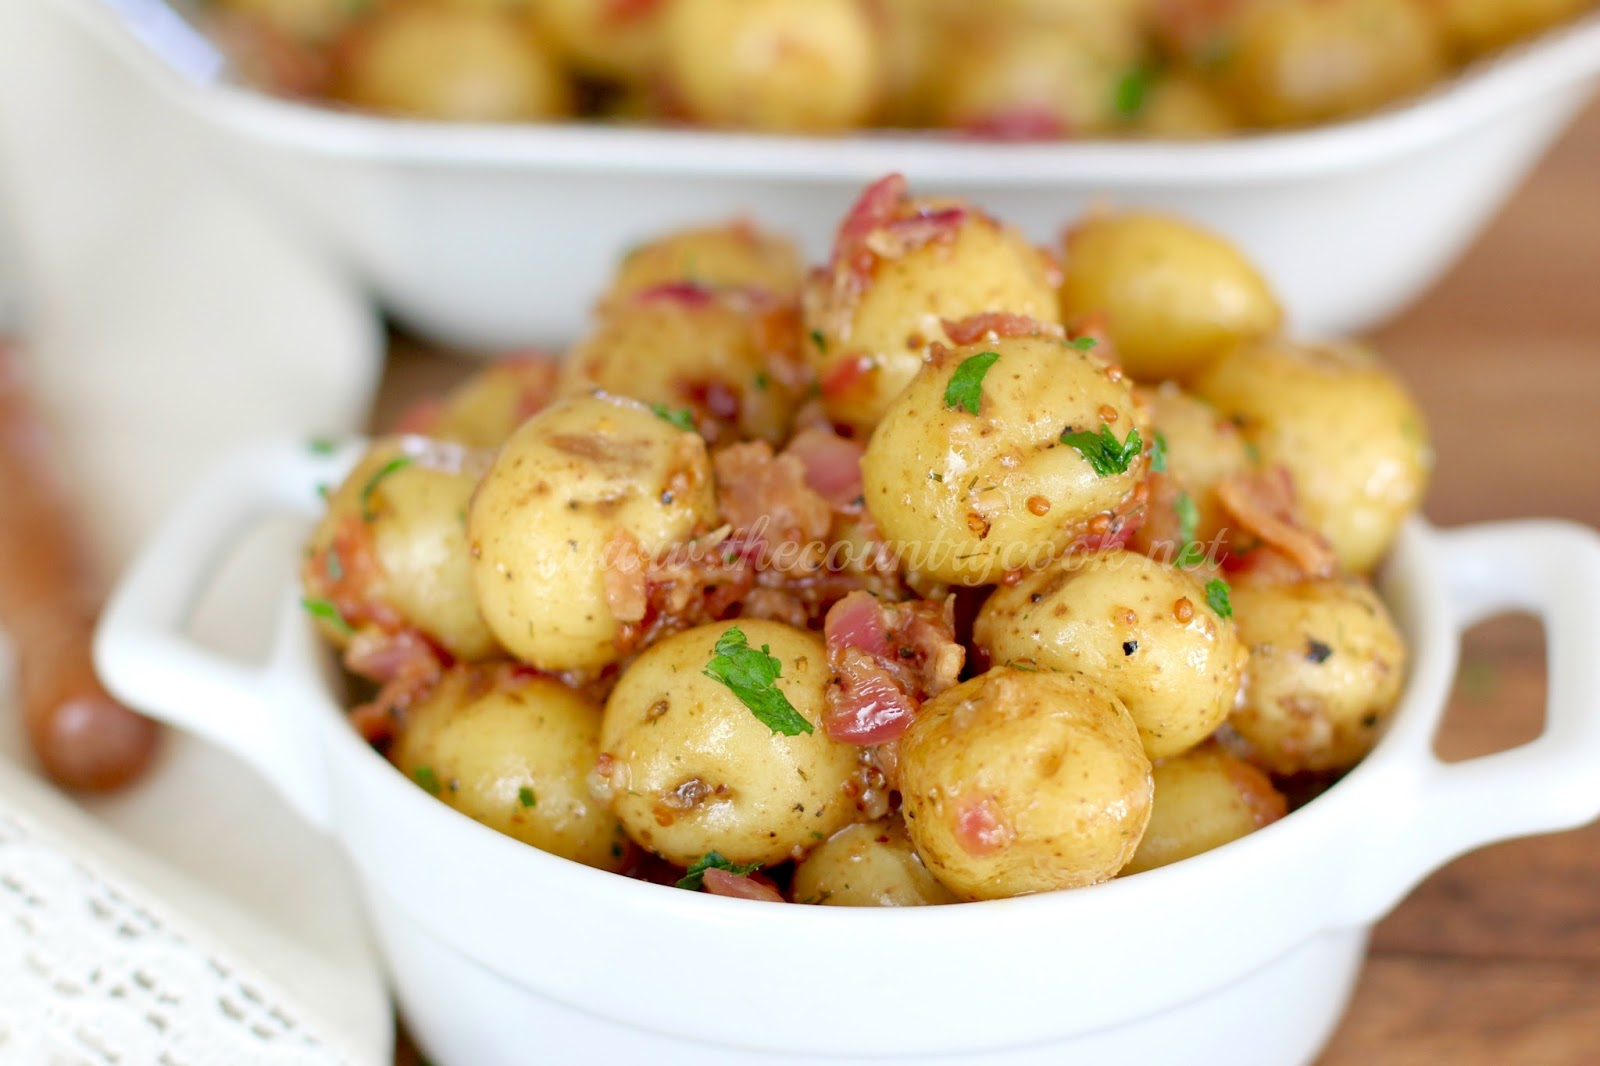 Warm Bacon Potato Salad - The Country Cook